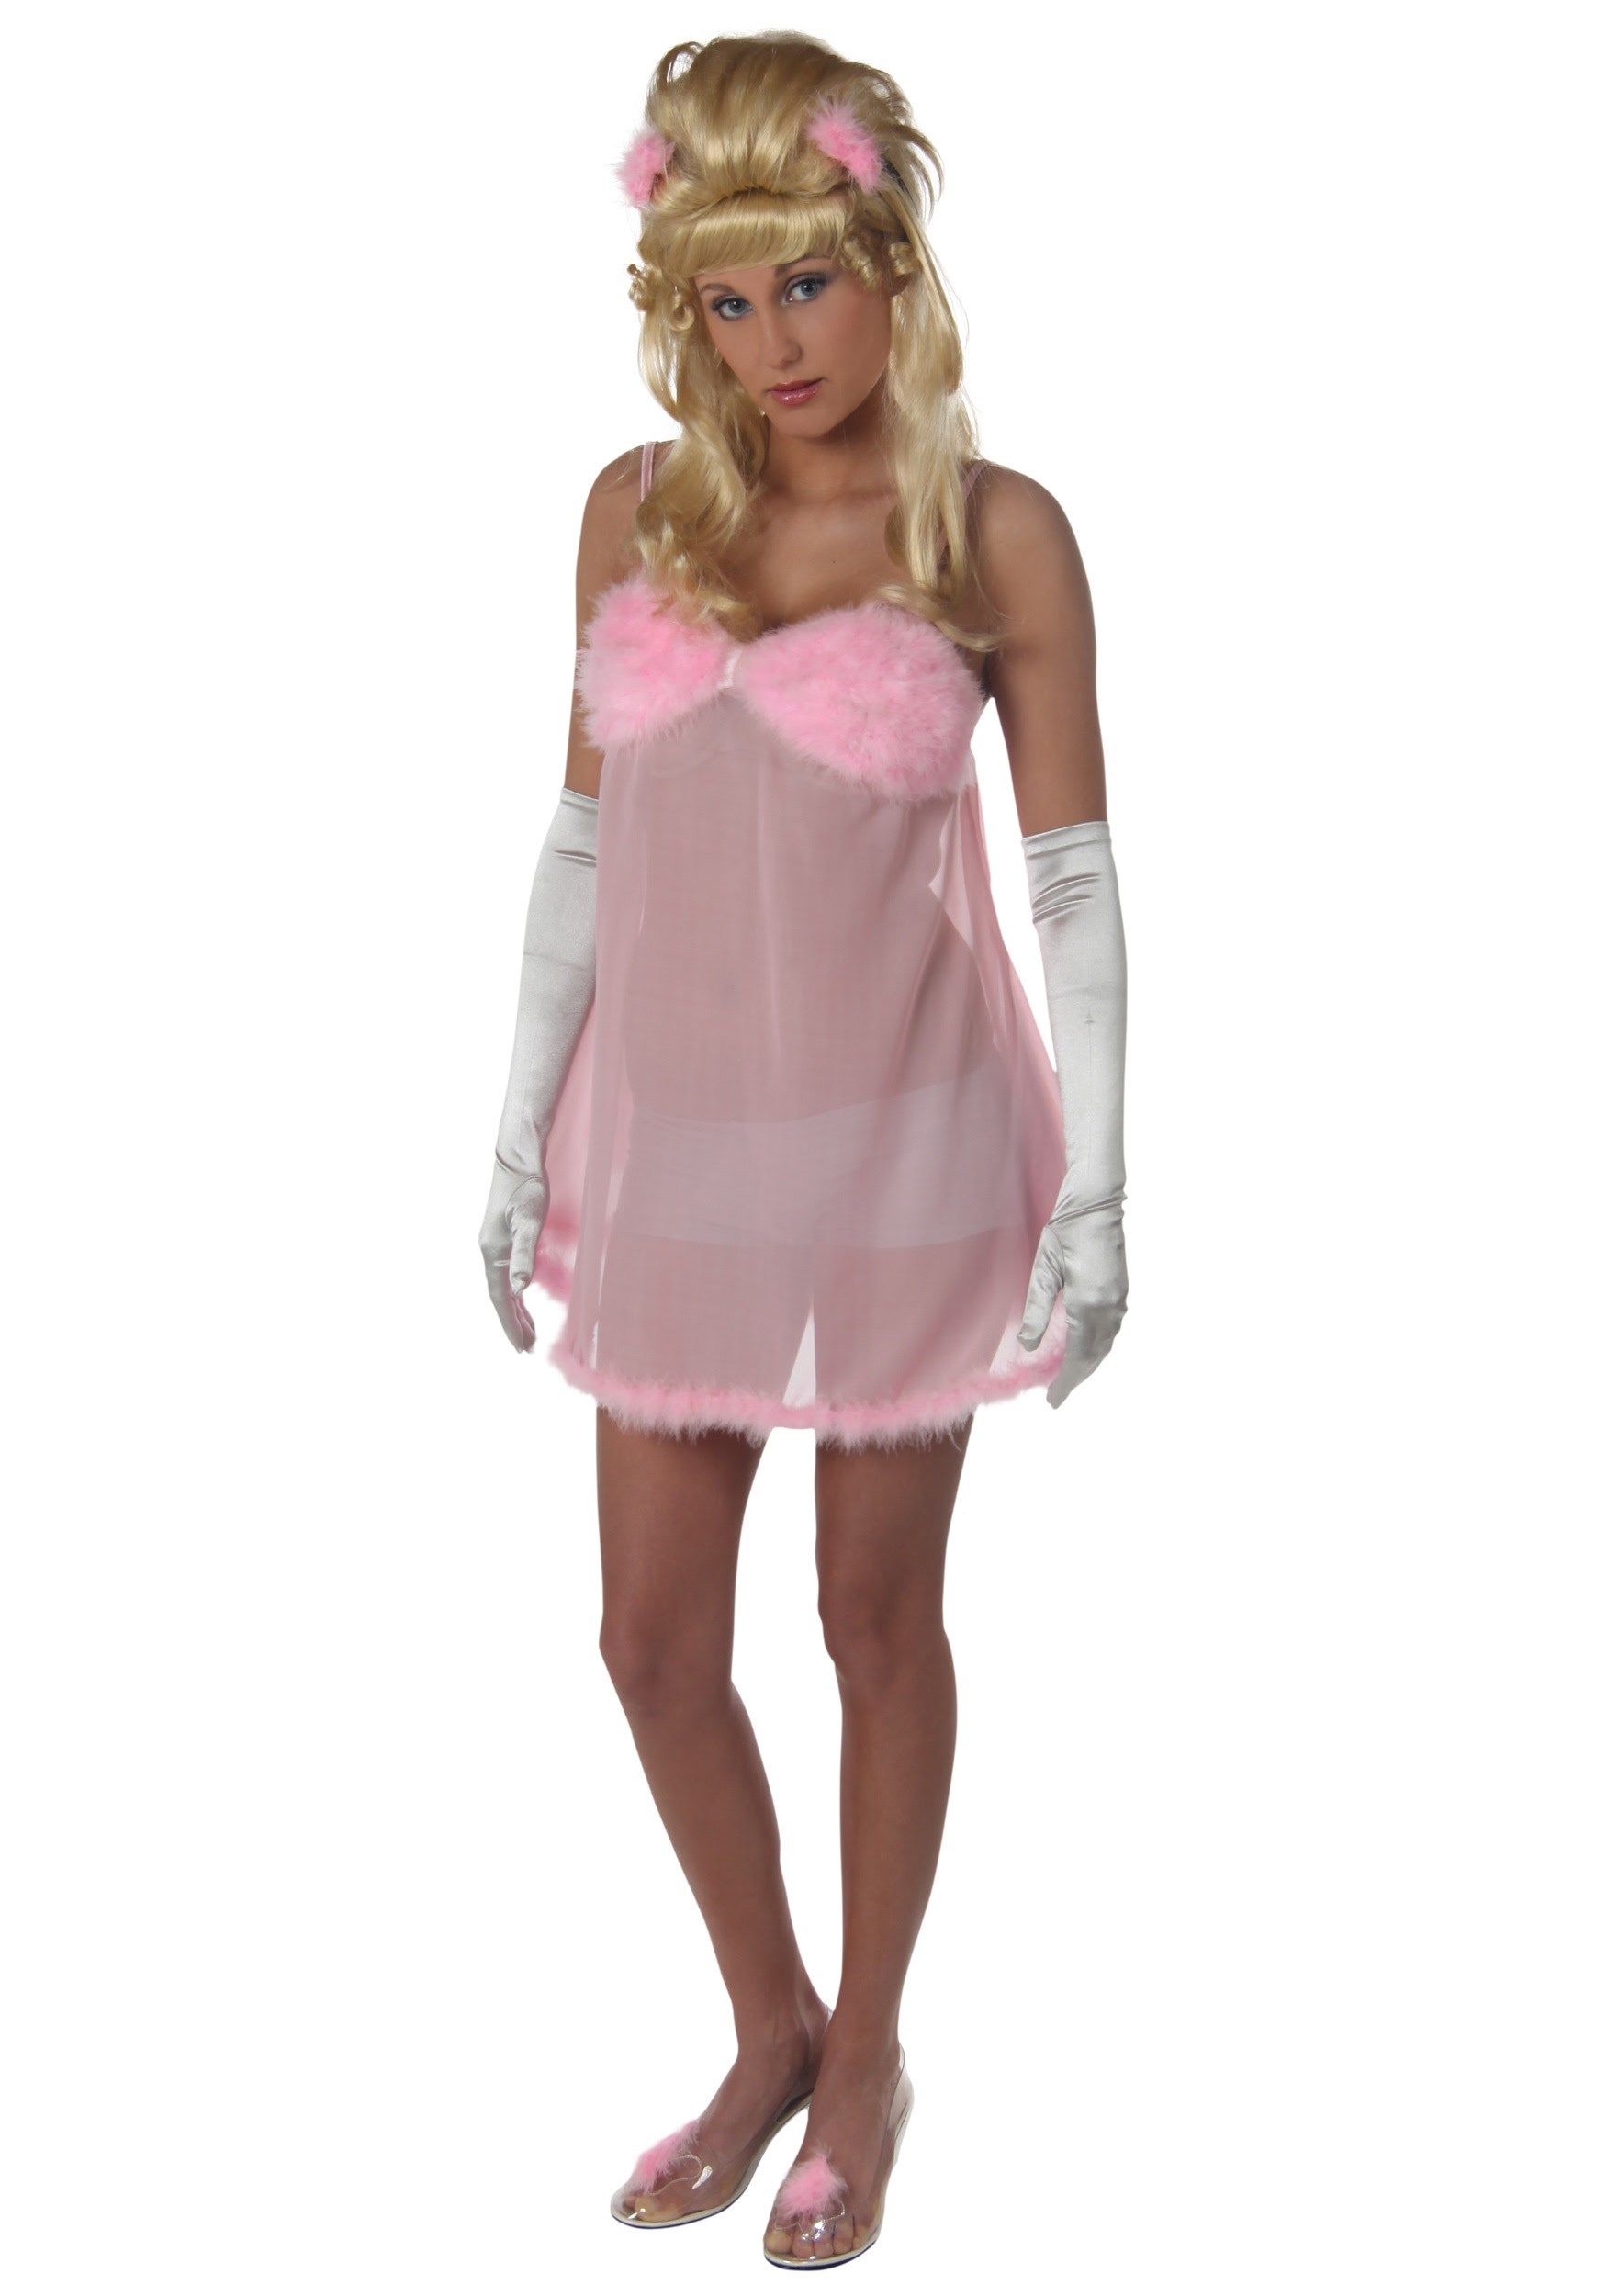 Adult Feminine Robot Costume Halloween Costumes